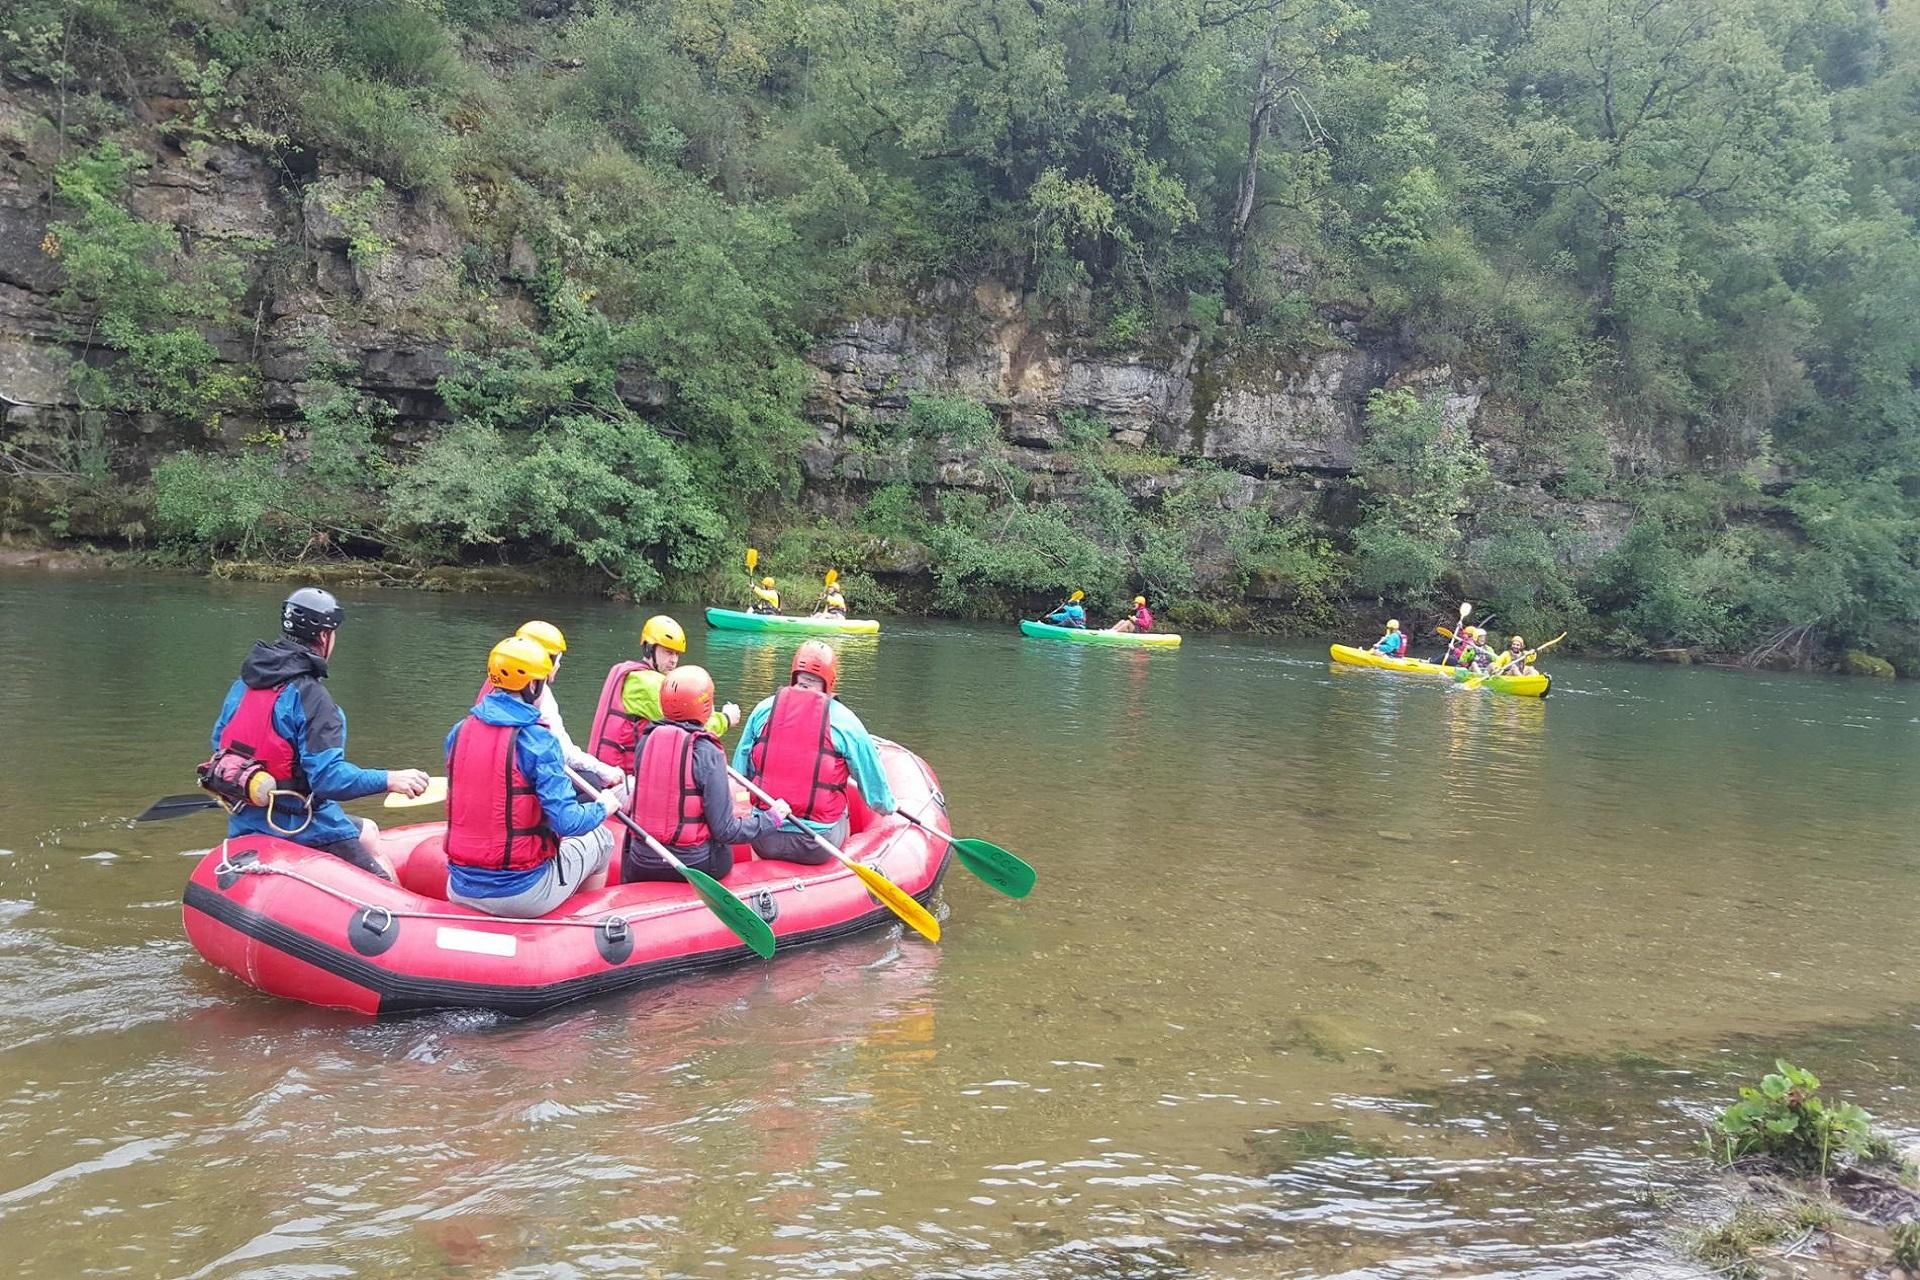 oleis-travel-events-animations-incentive-team-building-provence-canoe